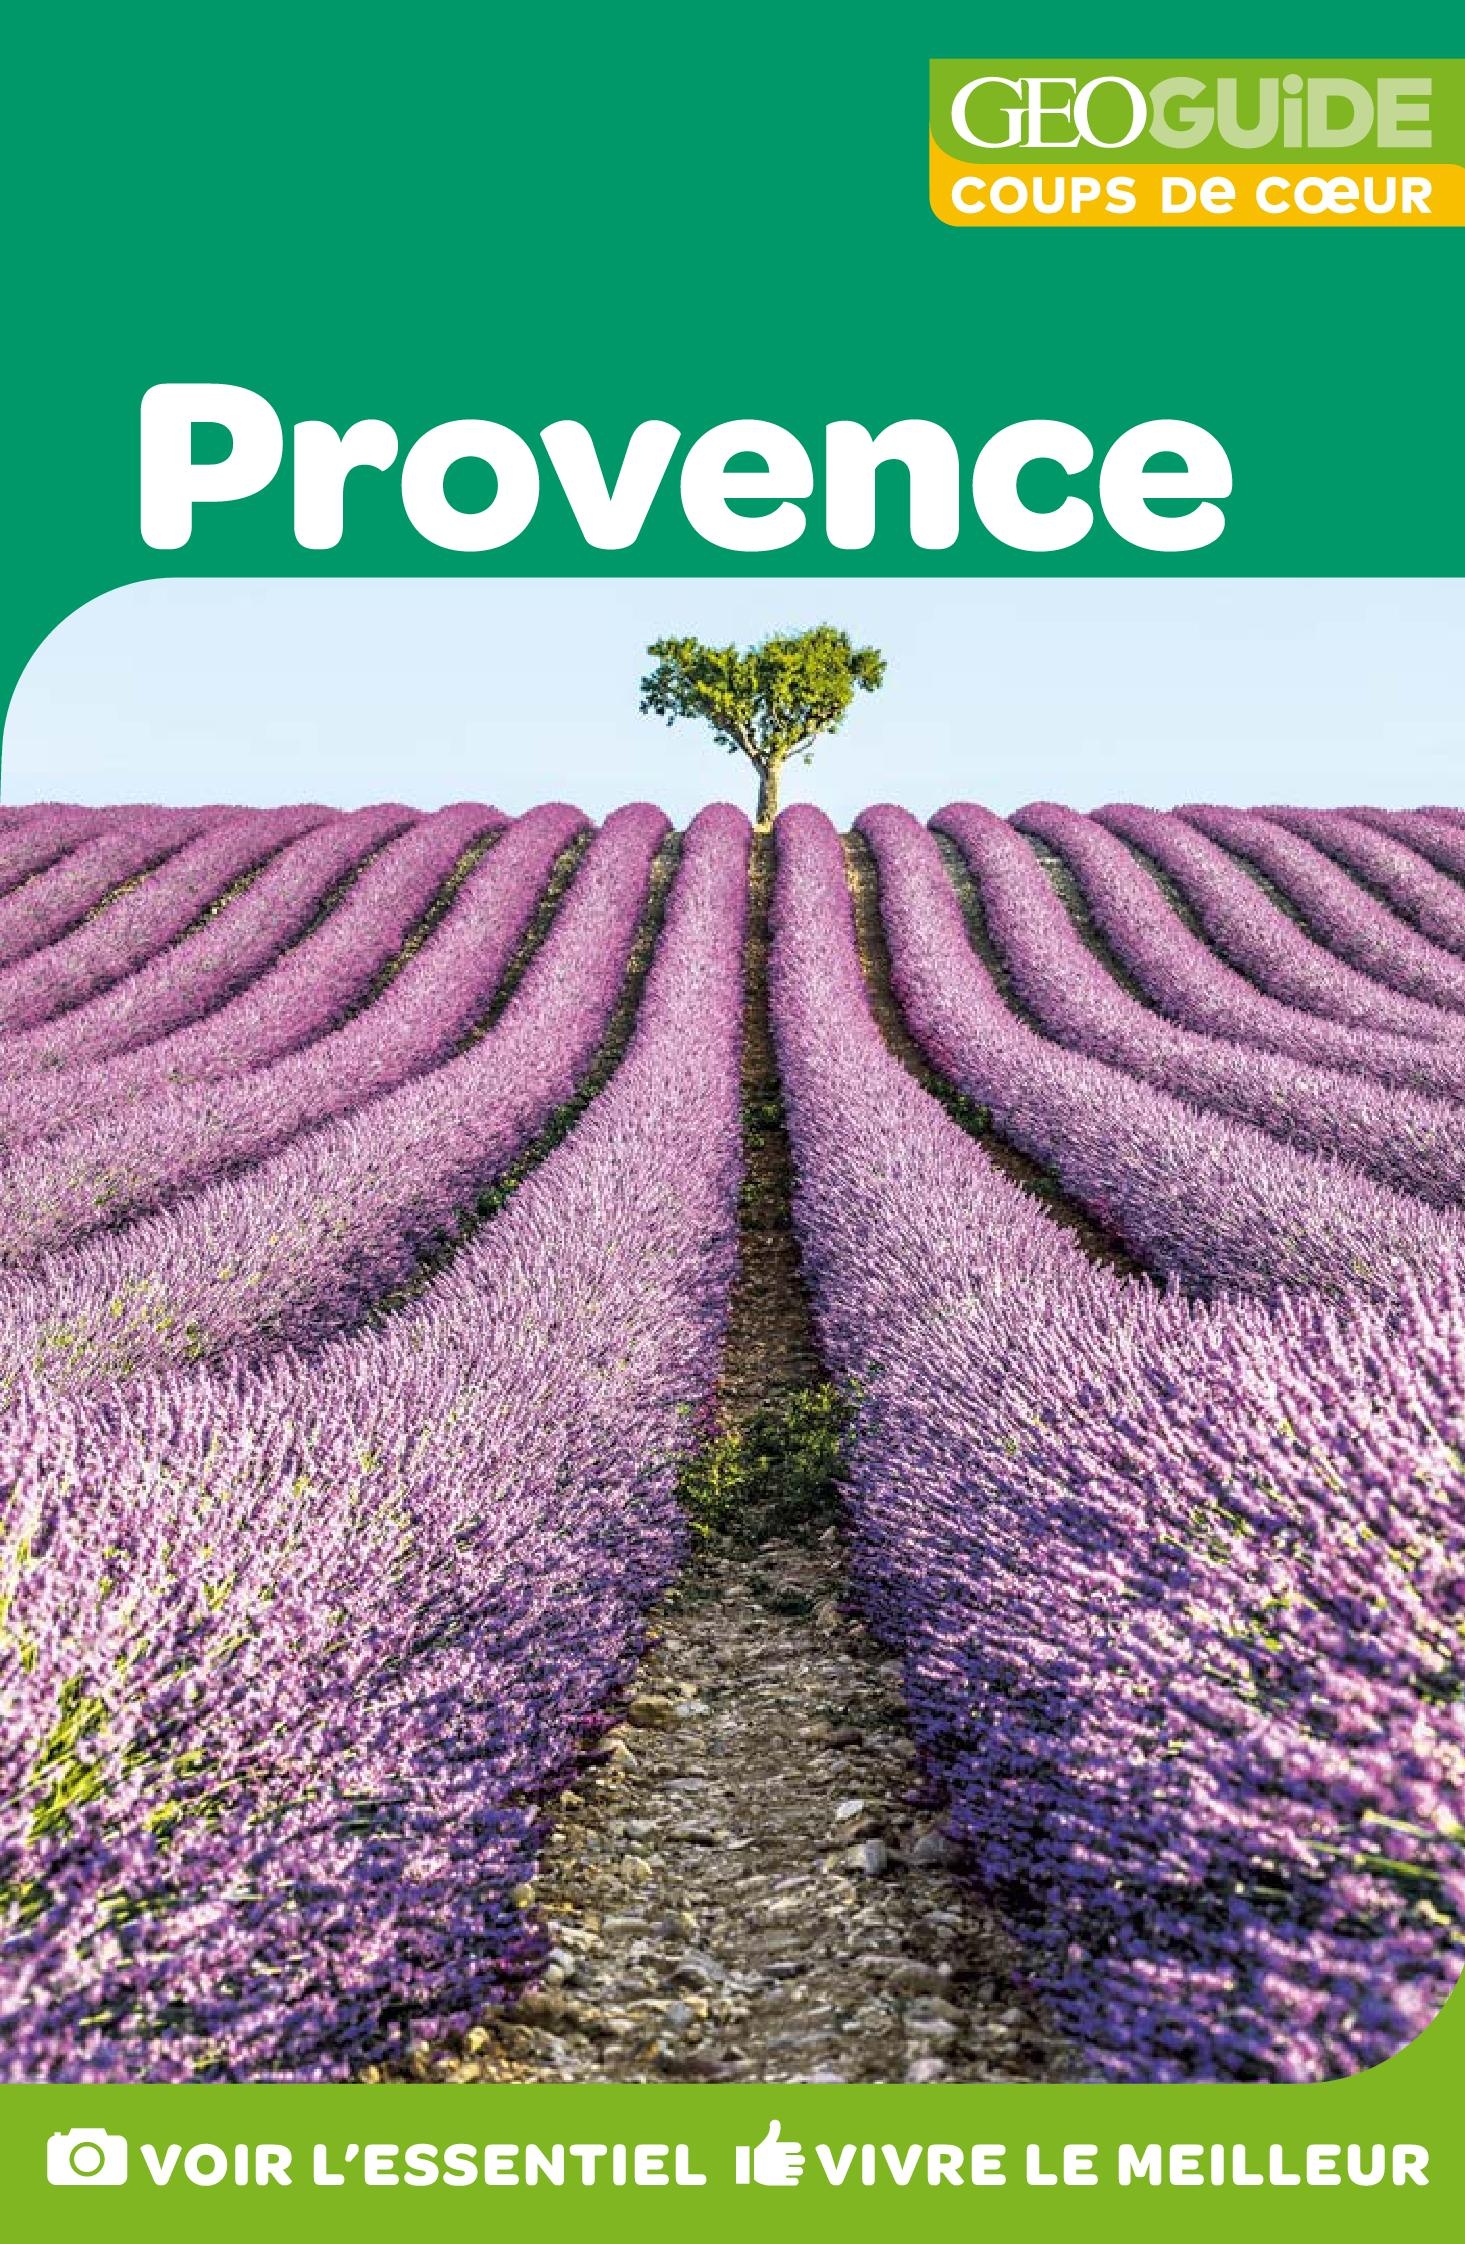 GEOguide Coups de coeur Provence | Collectif Gallimard Loisirs,